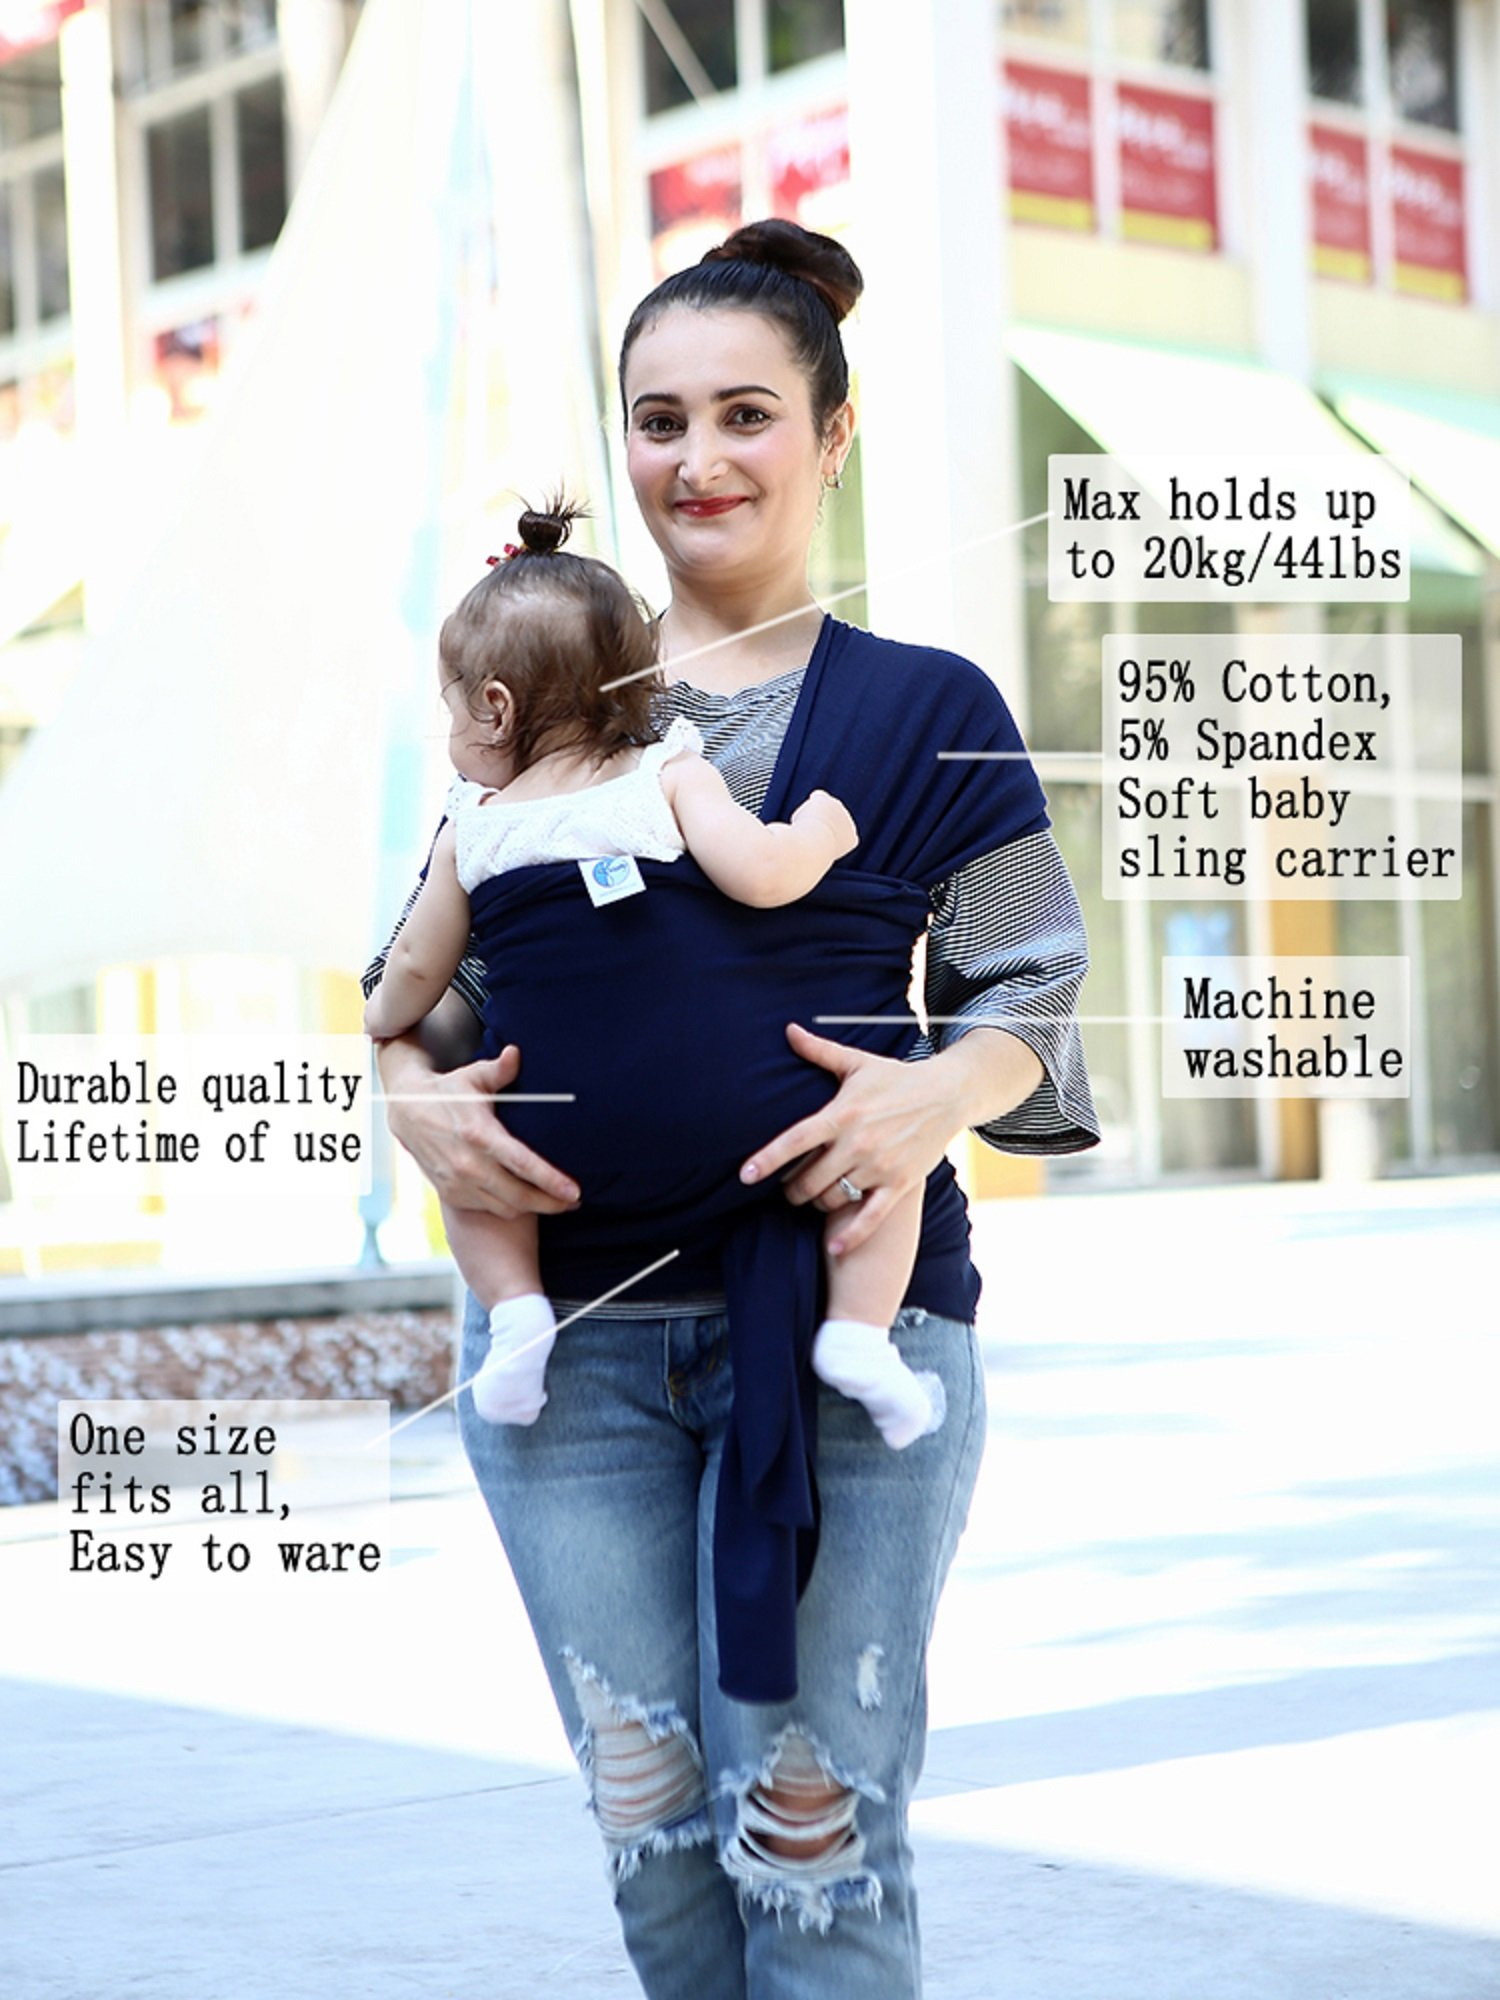 "Baby Wrap Carrier for Newborns, Infants & Toddlers Premium Soft Cotton Baby Sling Carrier for babies up to 44lbs/20kg, Safety Comfortable Functional Navy Blue DEBAIJIA One Size Fits All - Size is 510*53cm(200*21inch), suitable from new born to 20kg/44lbs. Perfect for newborns, infants and toddlers. Easy to Ware - Our wrap is easy and comfortable to wear and comes with a ""How to Use"" instruction booklet. Hands Free - Do housework, breast feeding, grab a coffee, shopping while keeping baby safe and close. 2"